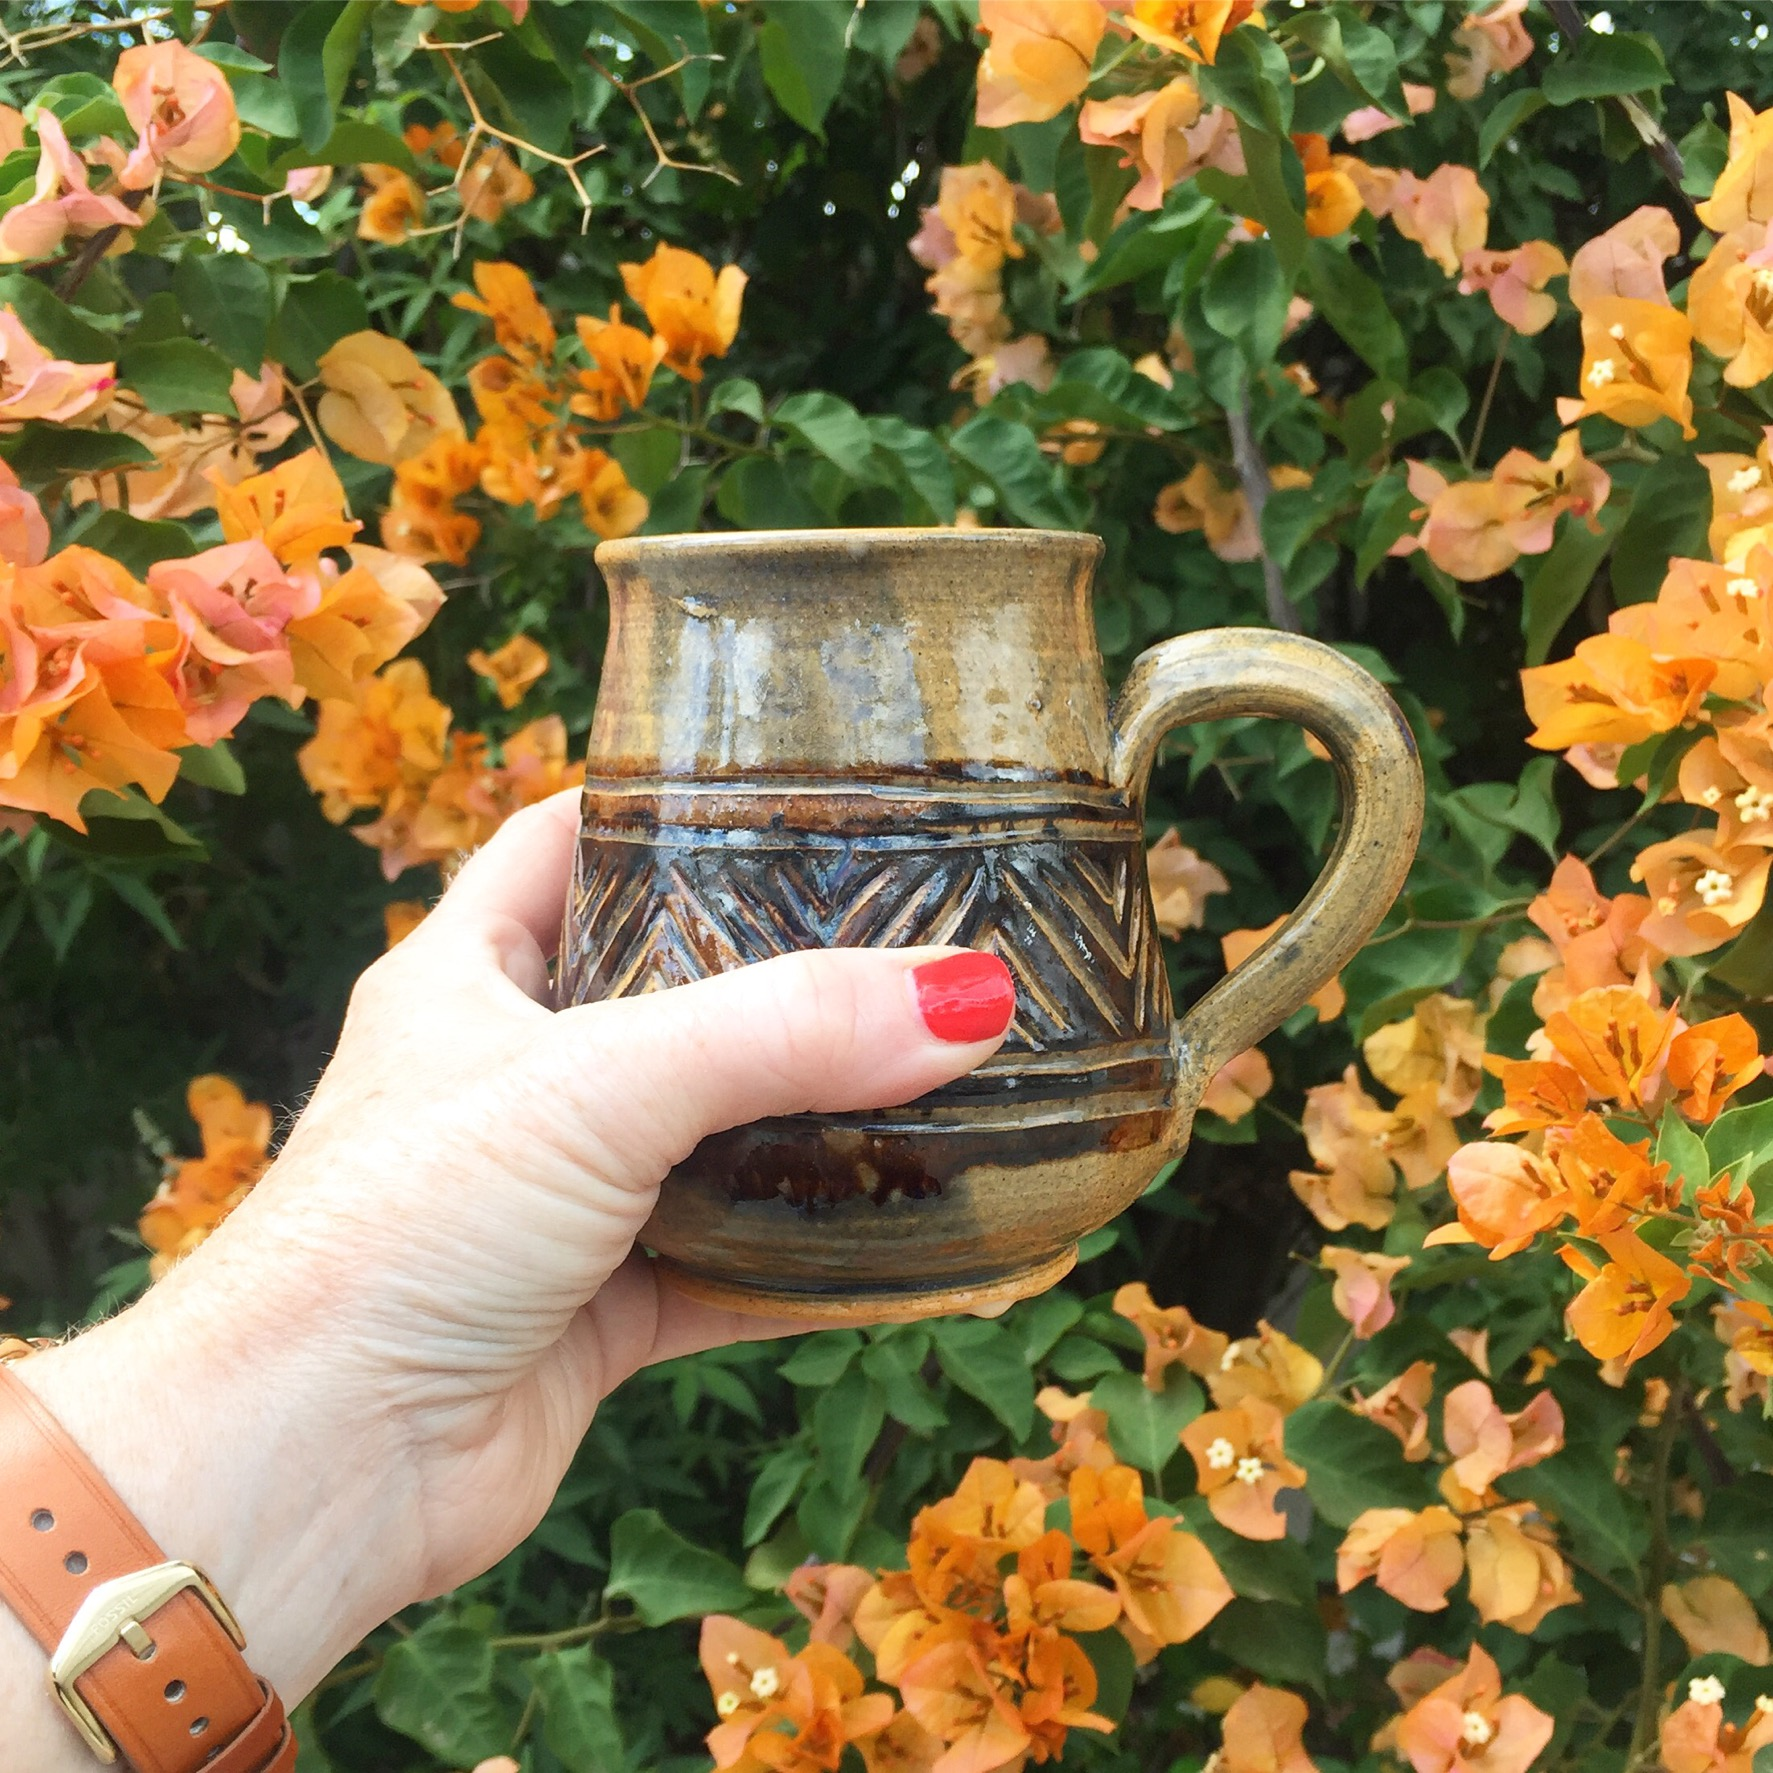 Palm French Press Coffee Maker : How to Make French Press Coffee - Oleander + Palm